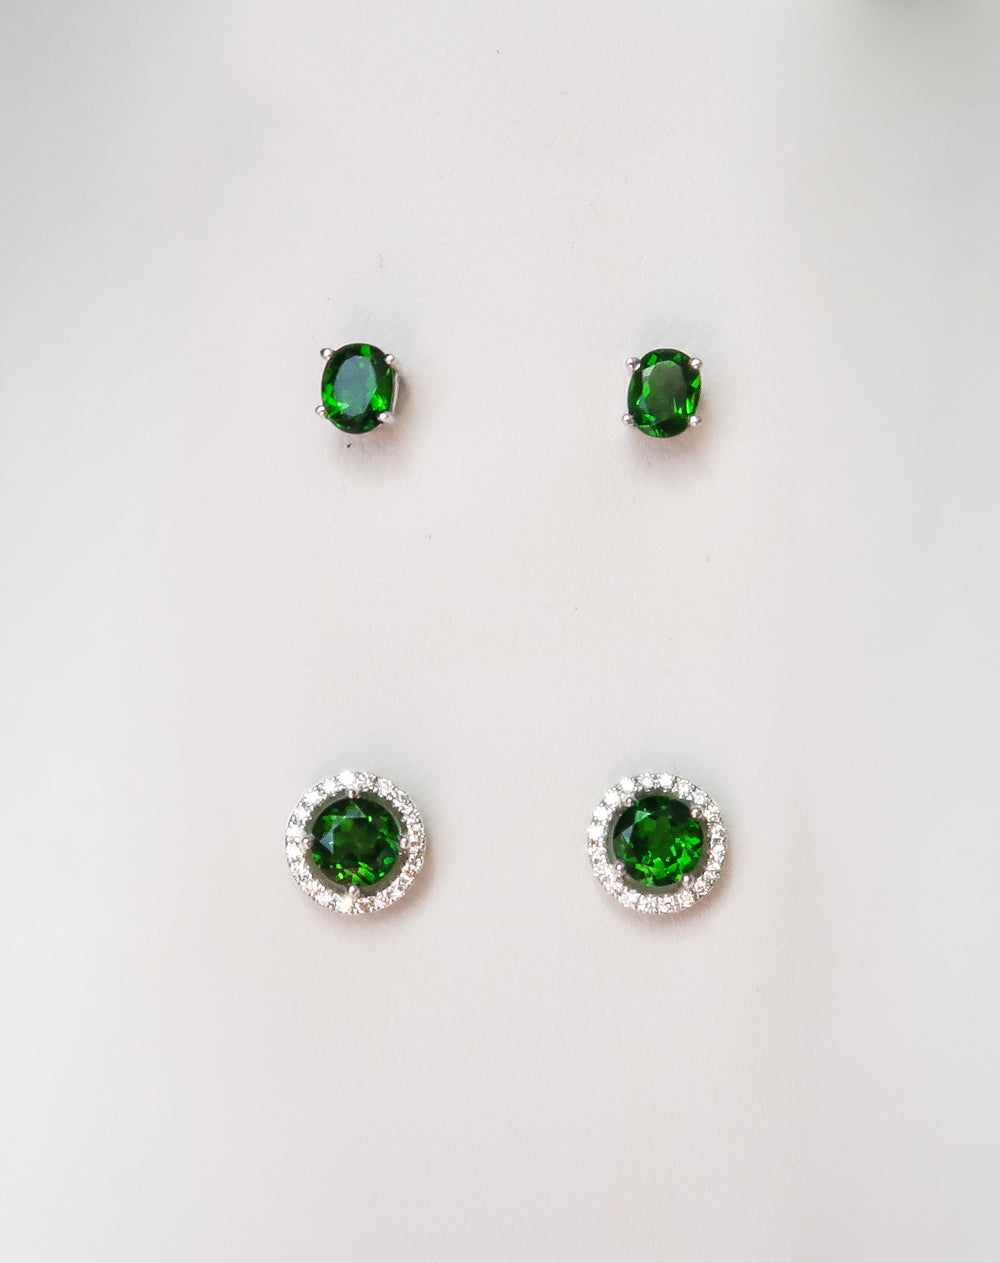 oval emerald stud earrings and round emerald with a diamond halo earring studs